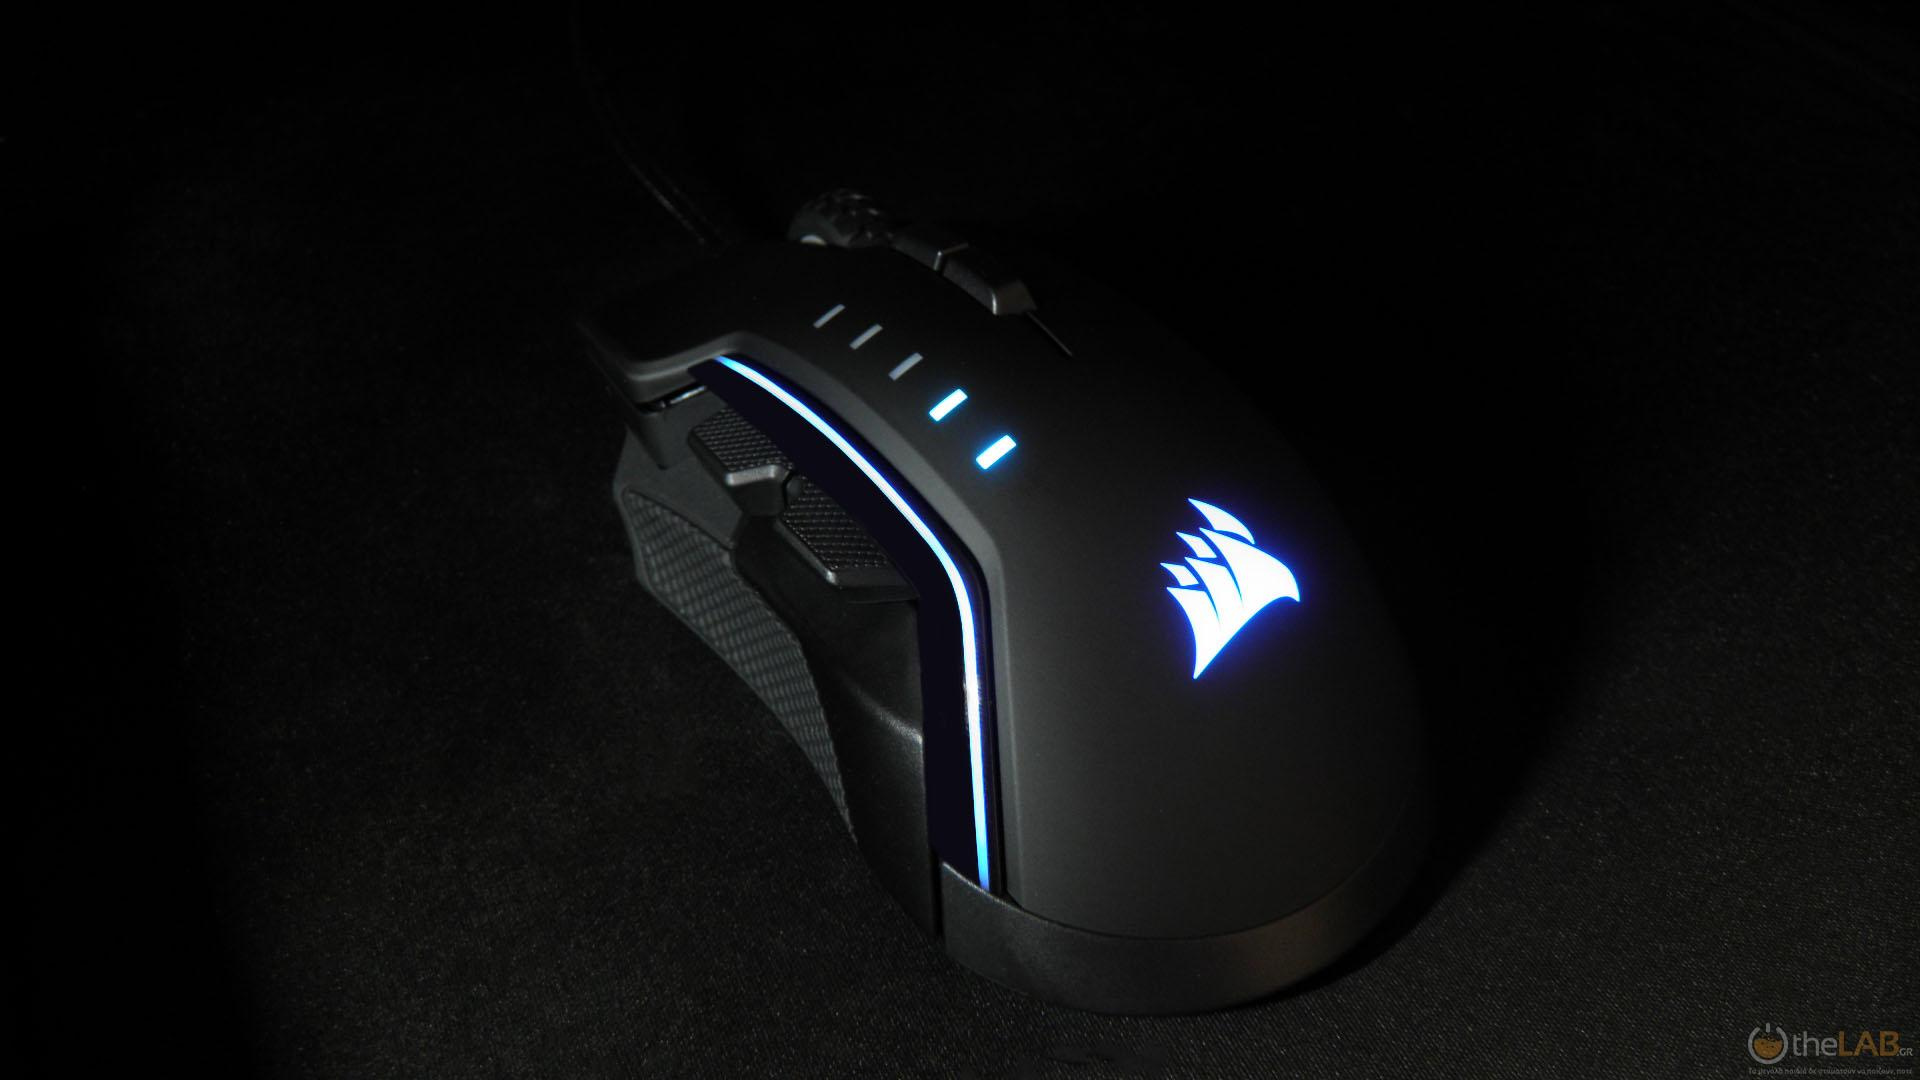 corsair-glaive-rgb-pro-gaming-mouse-review-mouse-leds